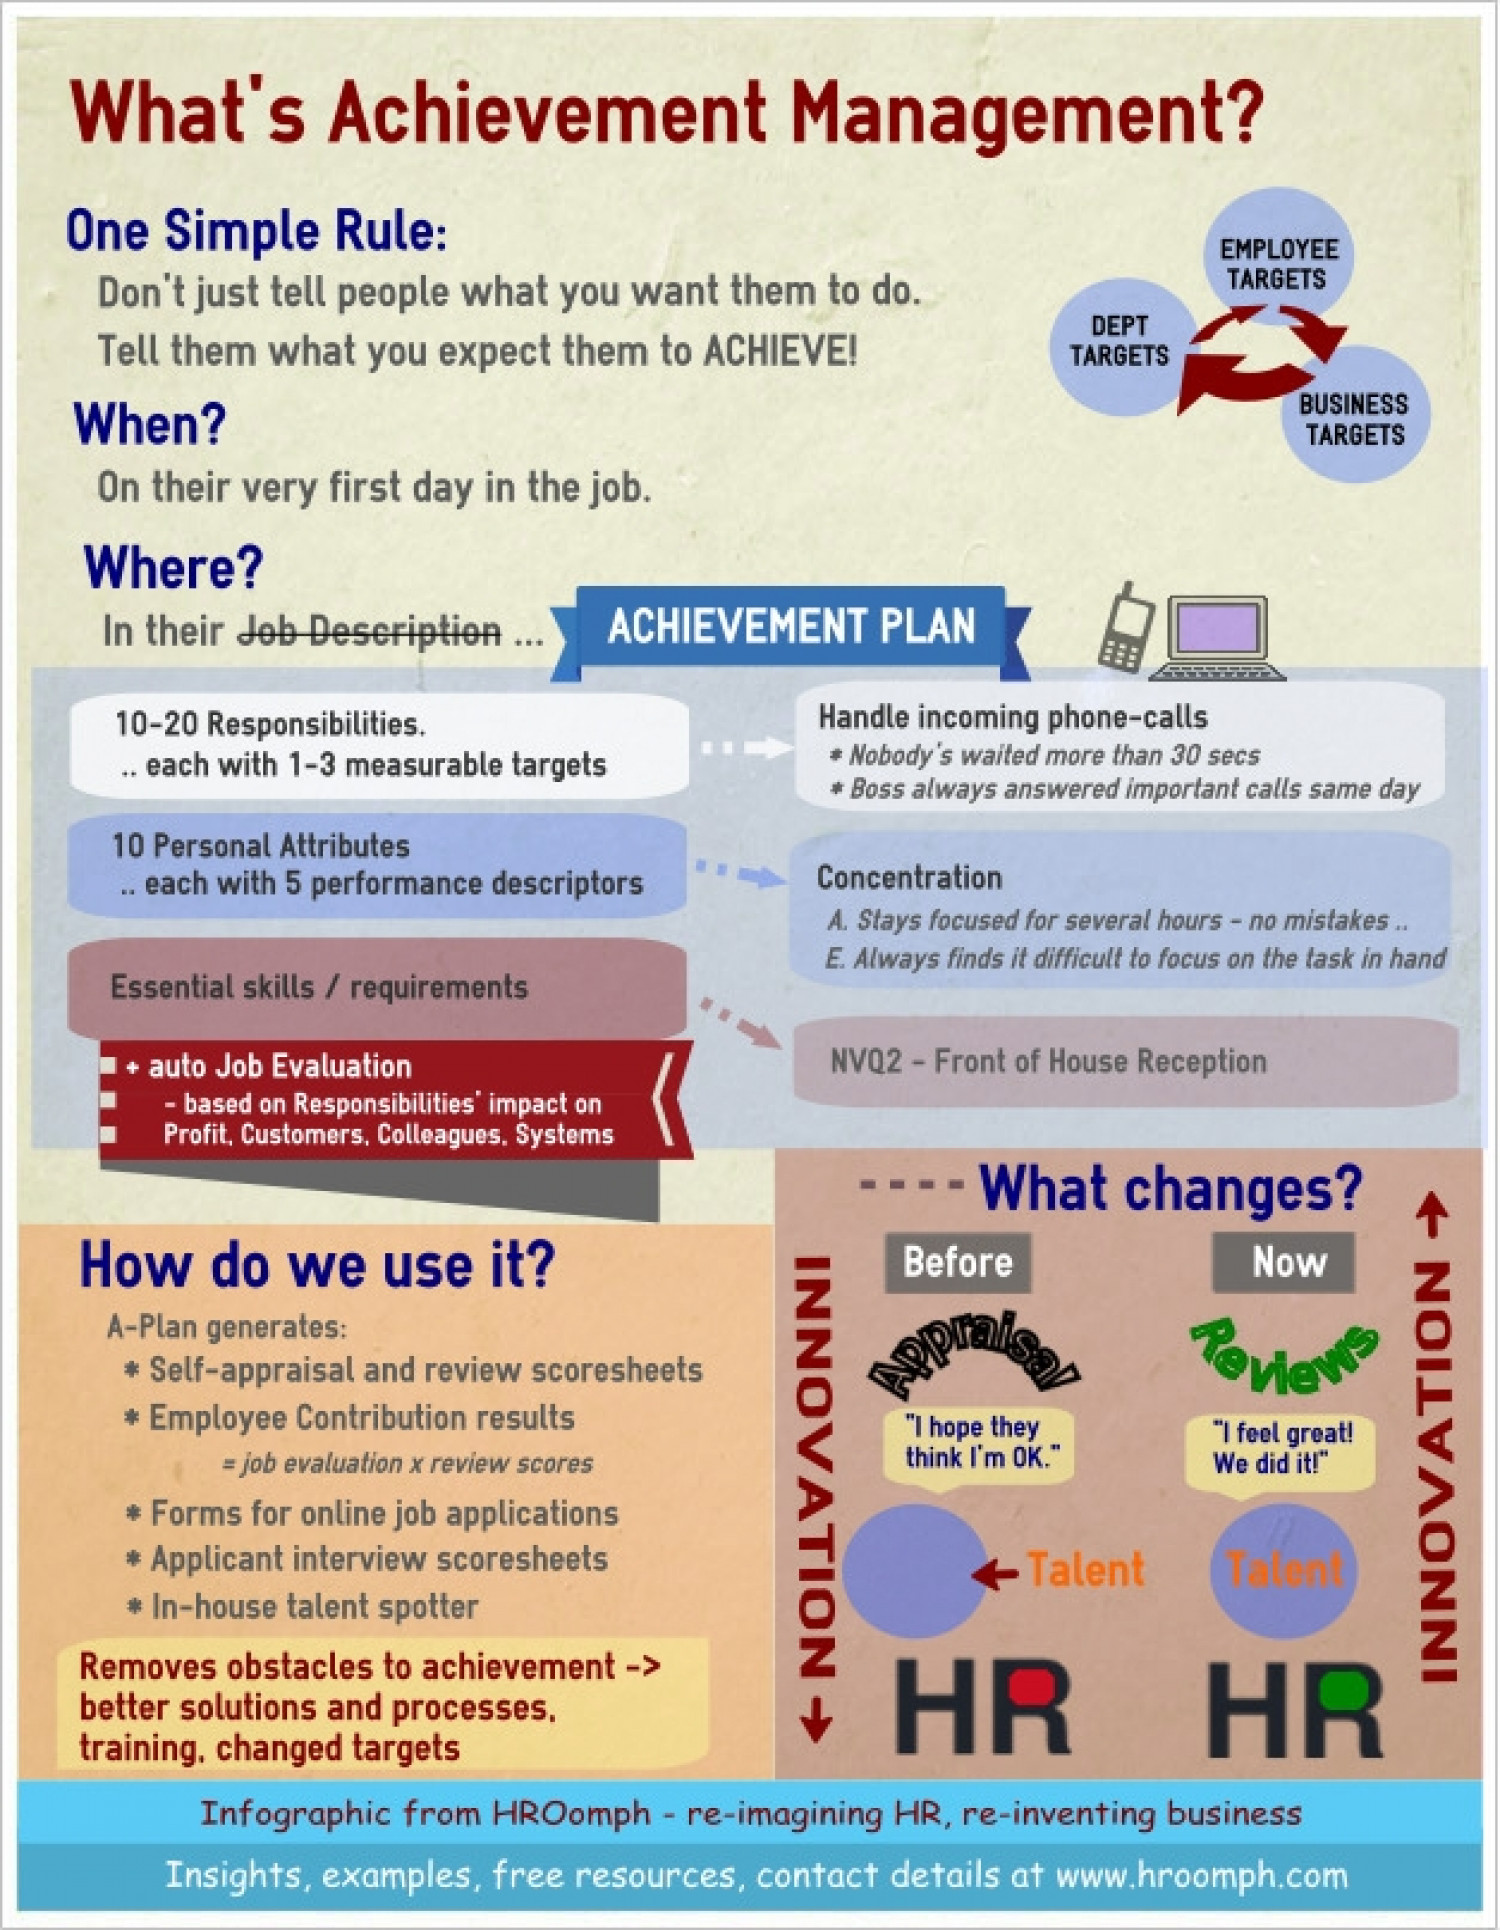 What's Achievement Management Infographic